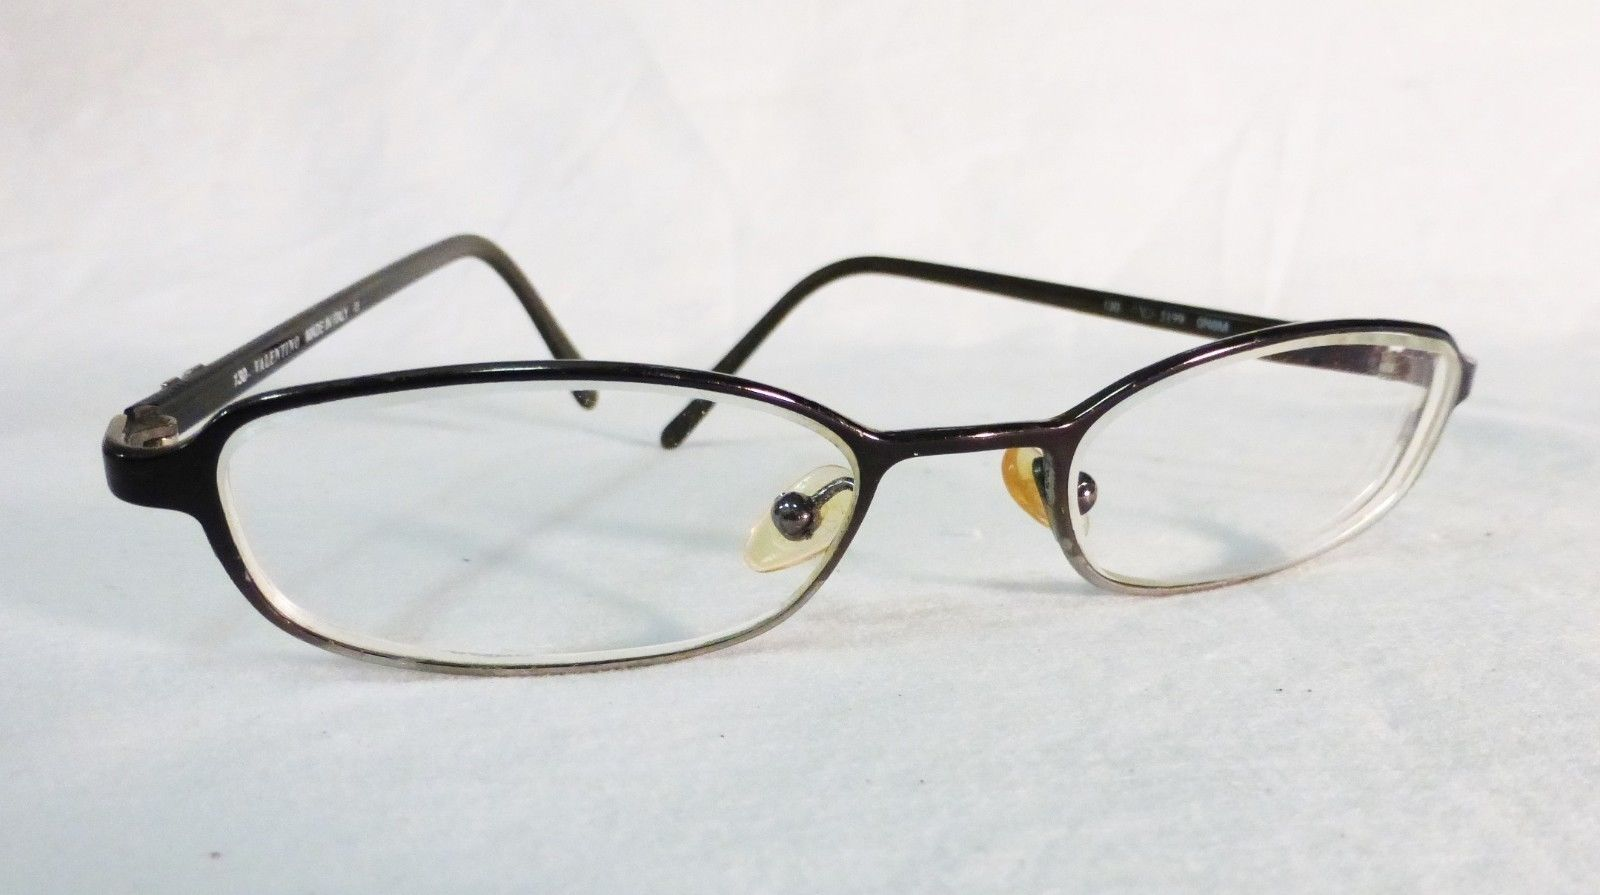 Valentino Eyeglass Frame: 20 listings